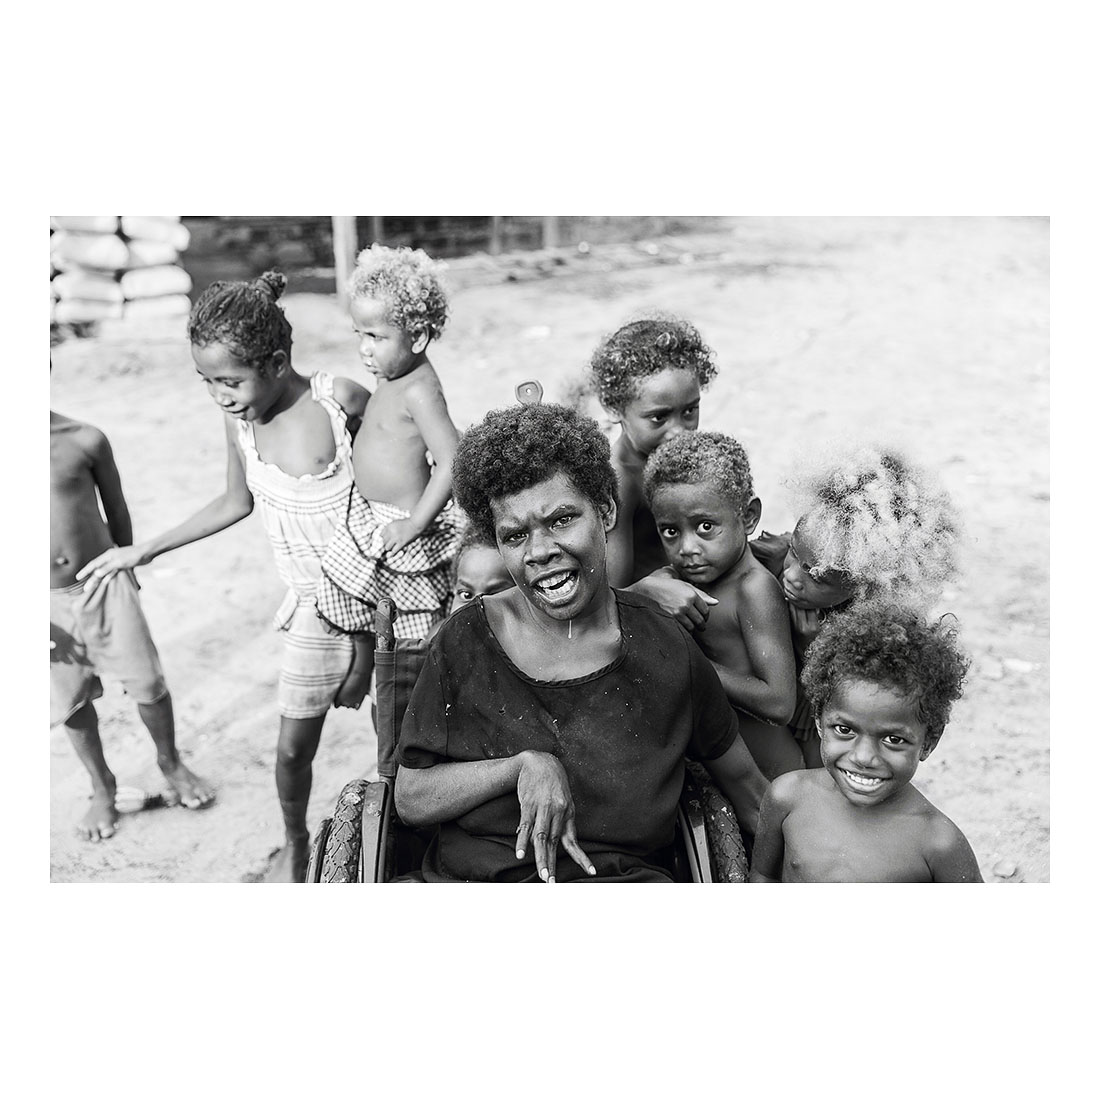 #1 Verahue, Guadalcanal, Solomon Islands  (2016).  Archival pigment print on Ilford paper. Exhibition print 24cm x 36cm. Different sizes available.